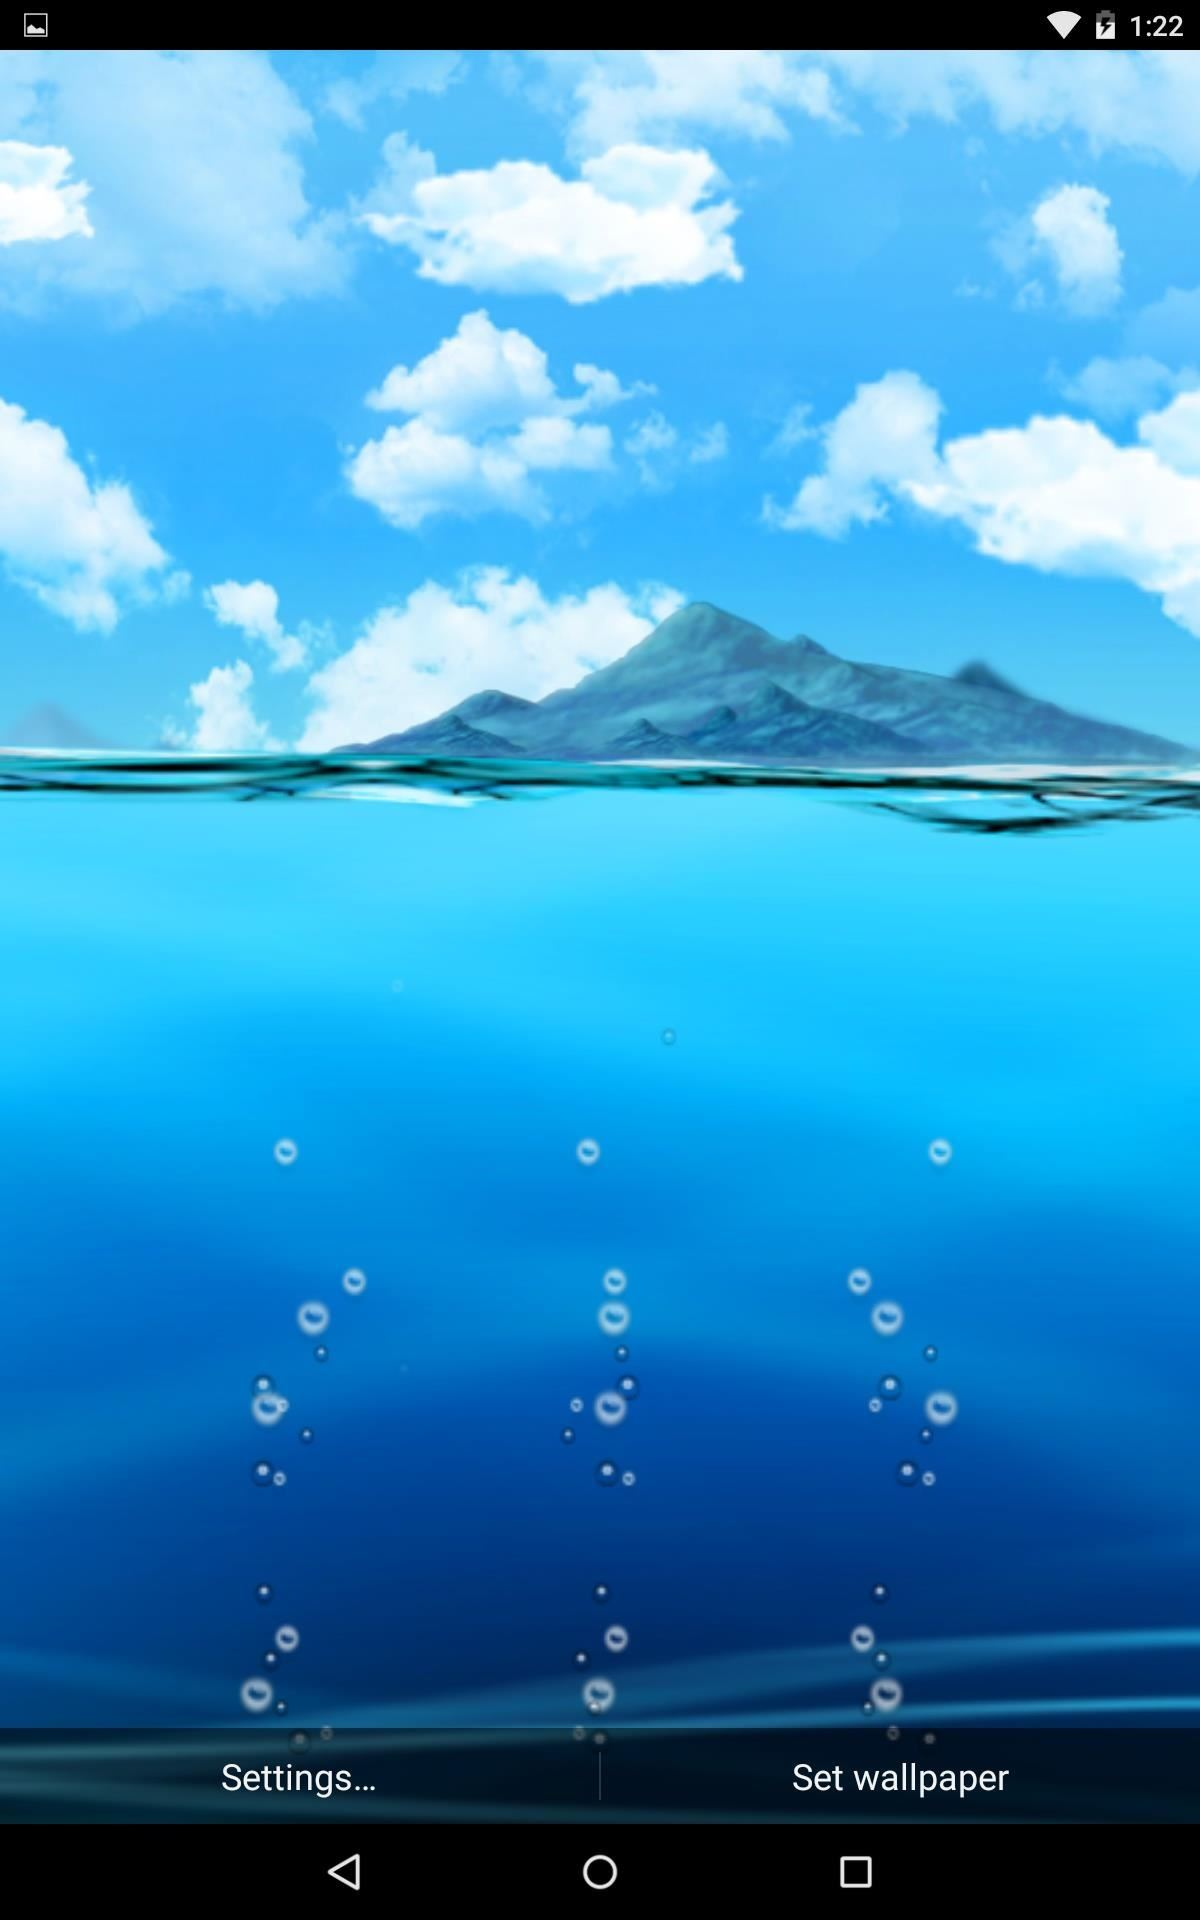 Also Included In This Menu Is A Previous ASUS Live Wallpaper Called LiveWater Which Includes Various Water Animations And The Ability To Set Your Own